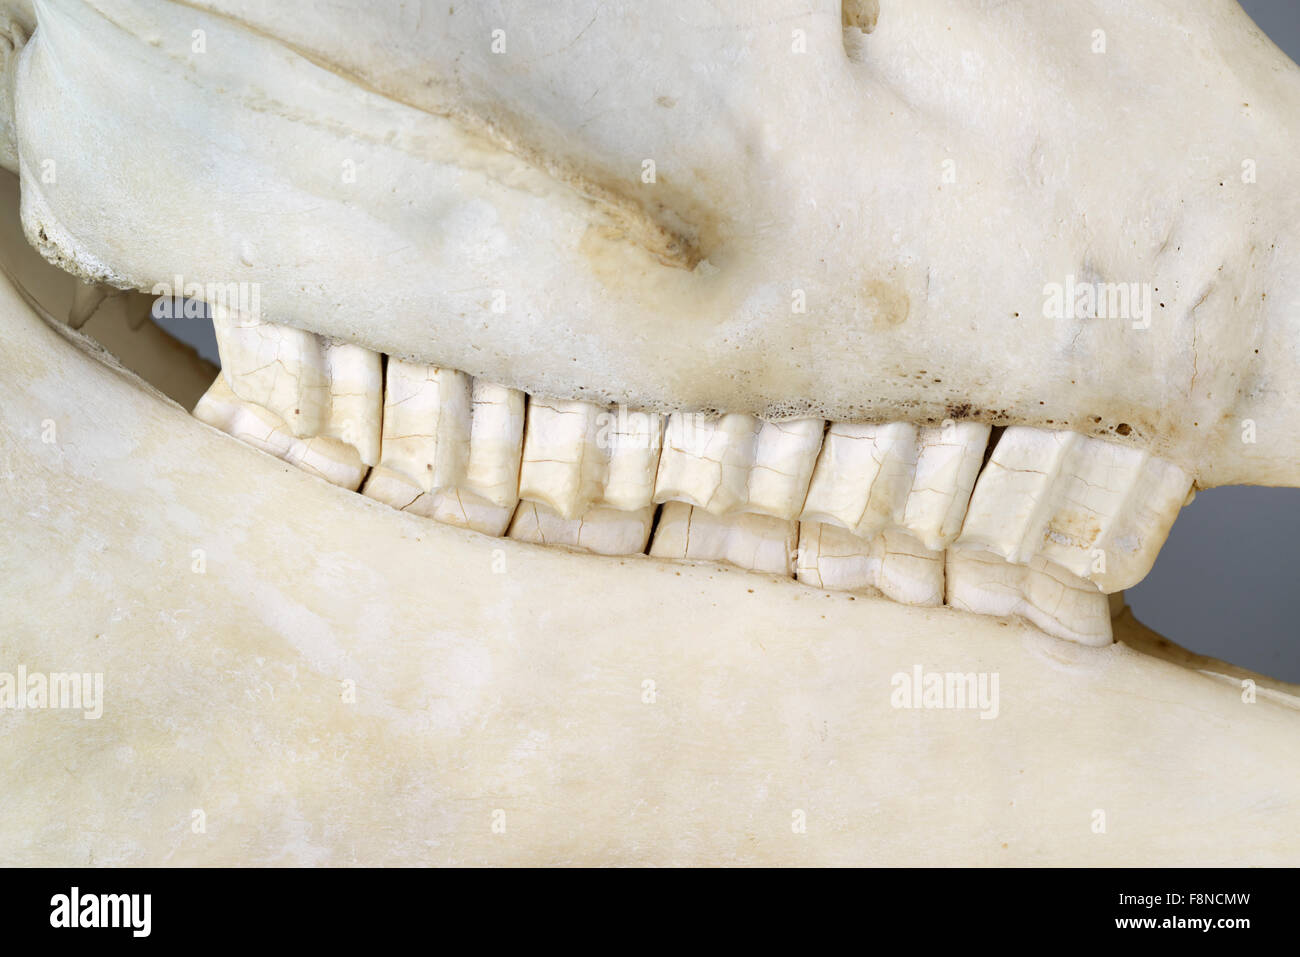 Side view of horse jaw showing molars for grinding grasses, Equus ferus caballus - Stock Image